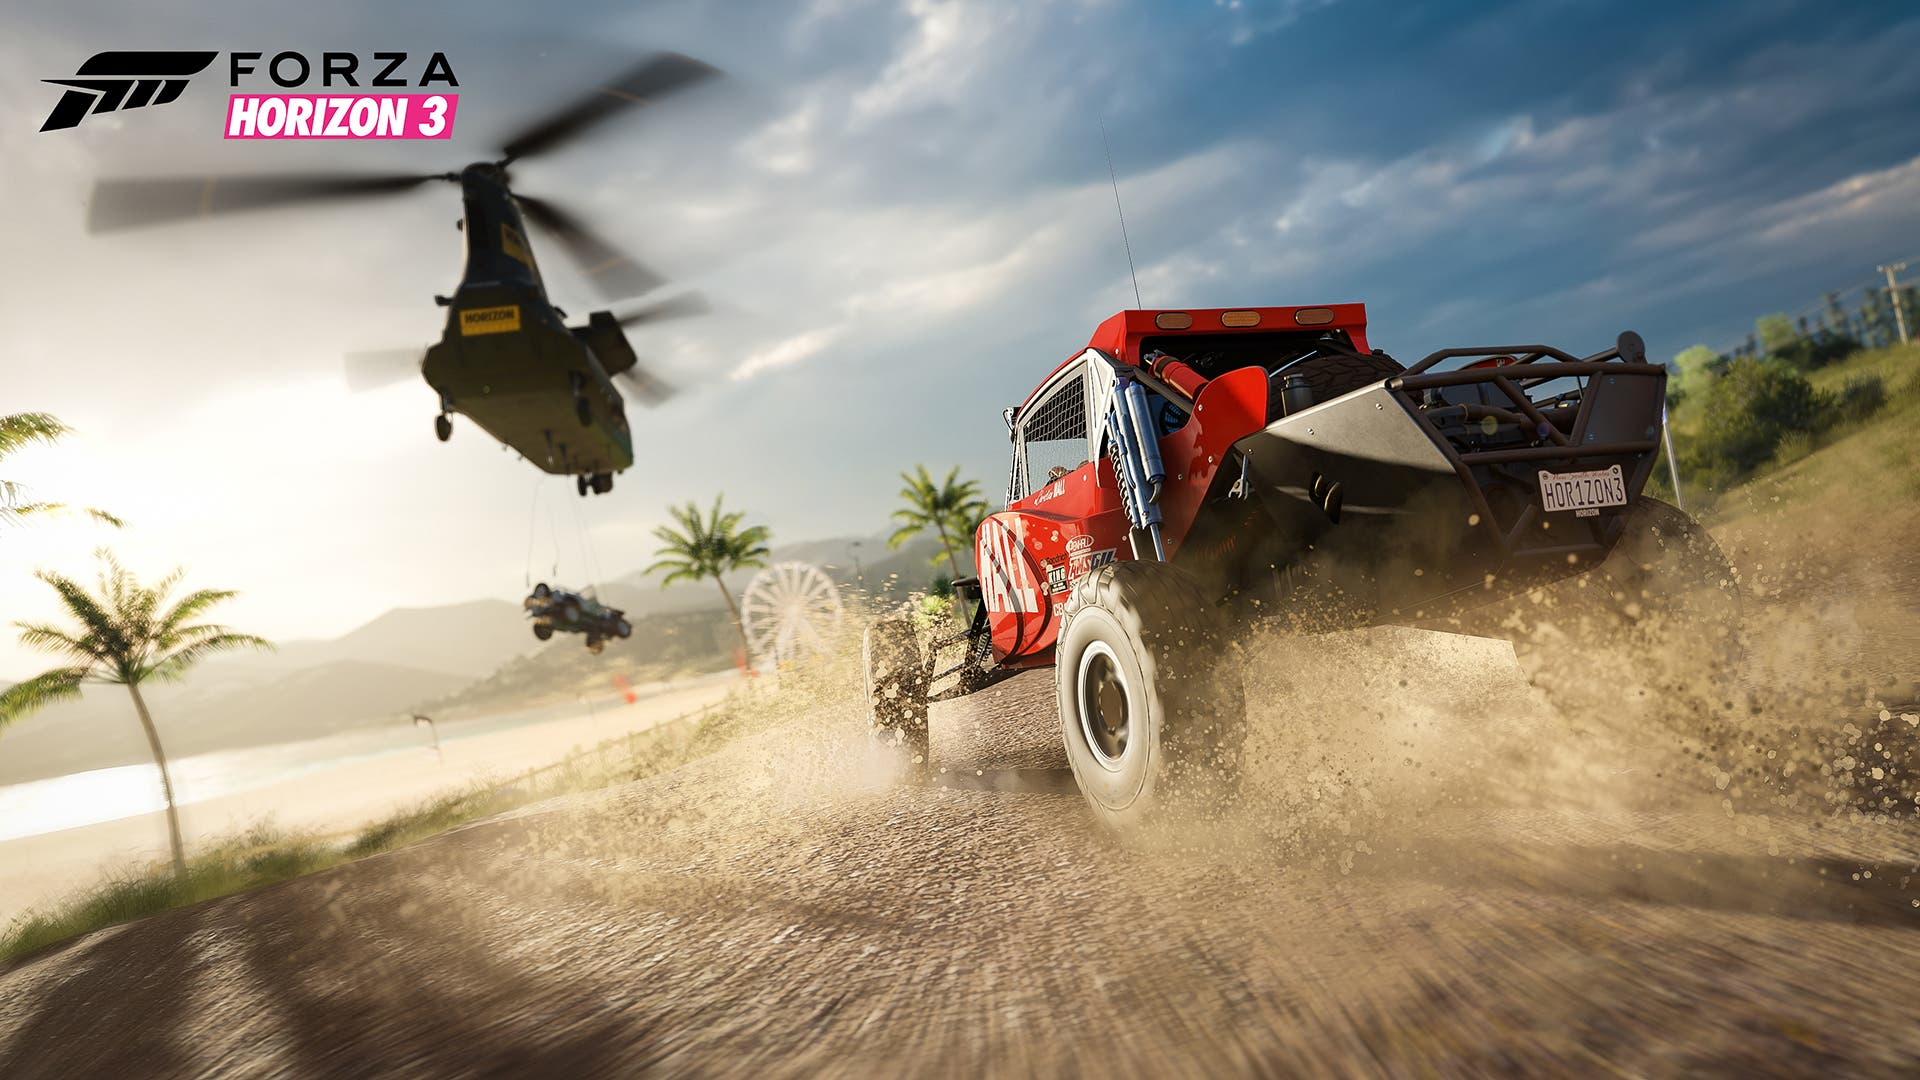 Forza-Horizon-3-Chopper-Buggy-helicopter